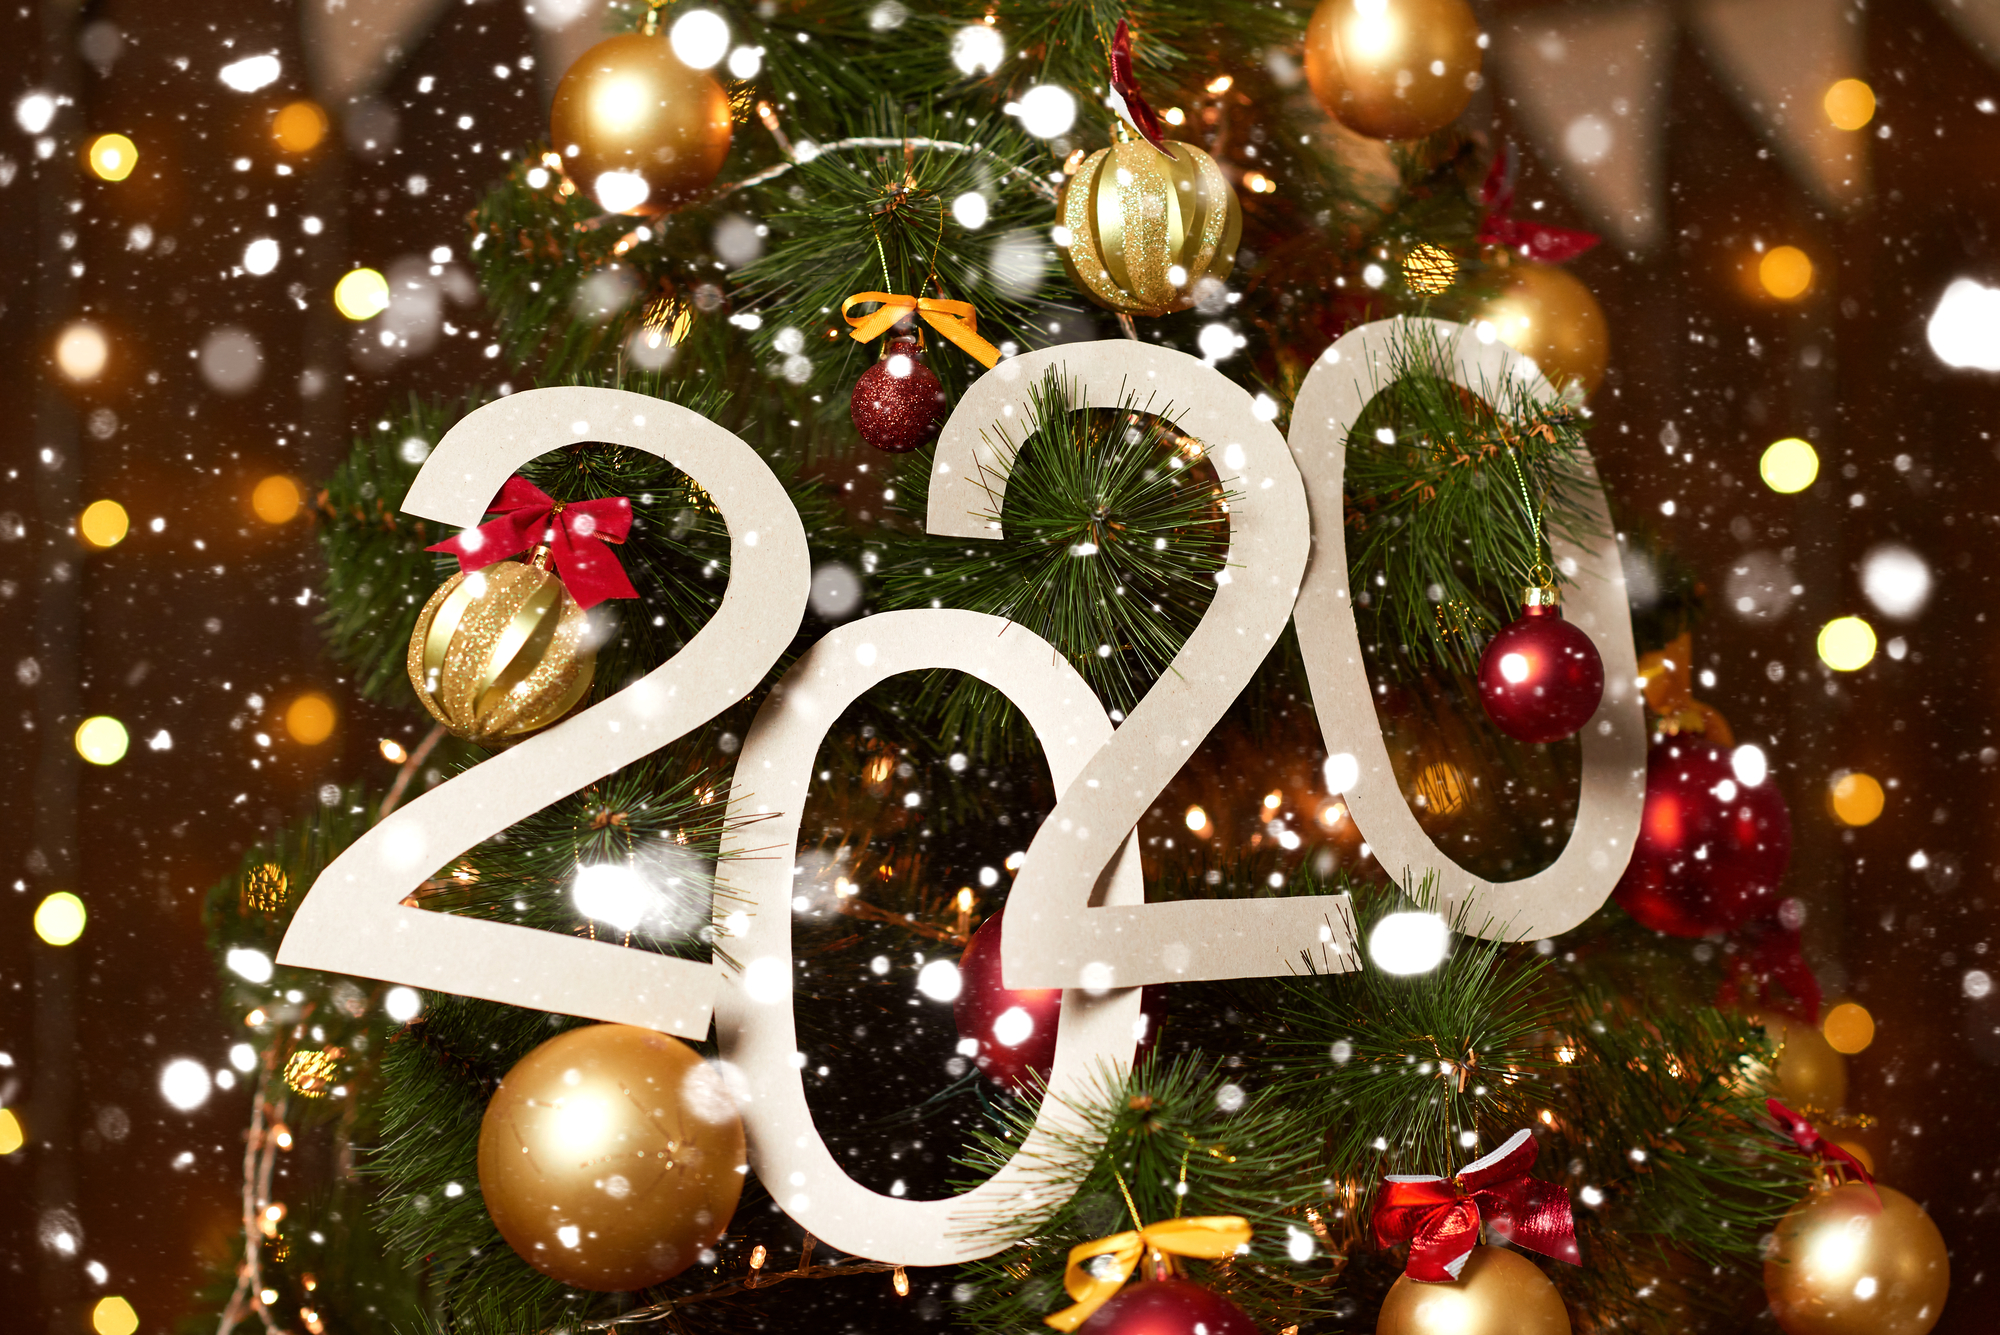 2020 numbers on christmas tree with decoration and wood background - new year holiday concept